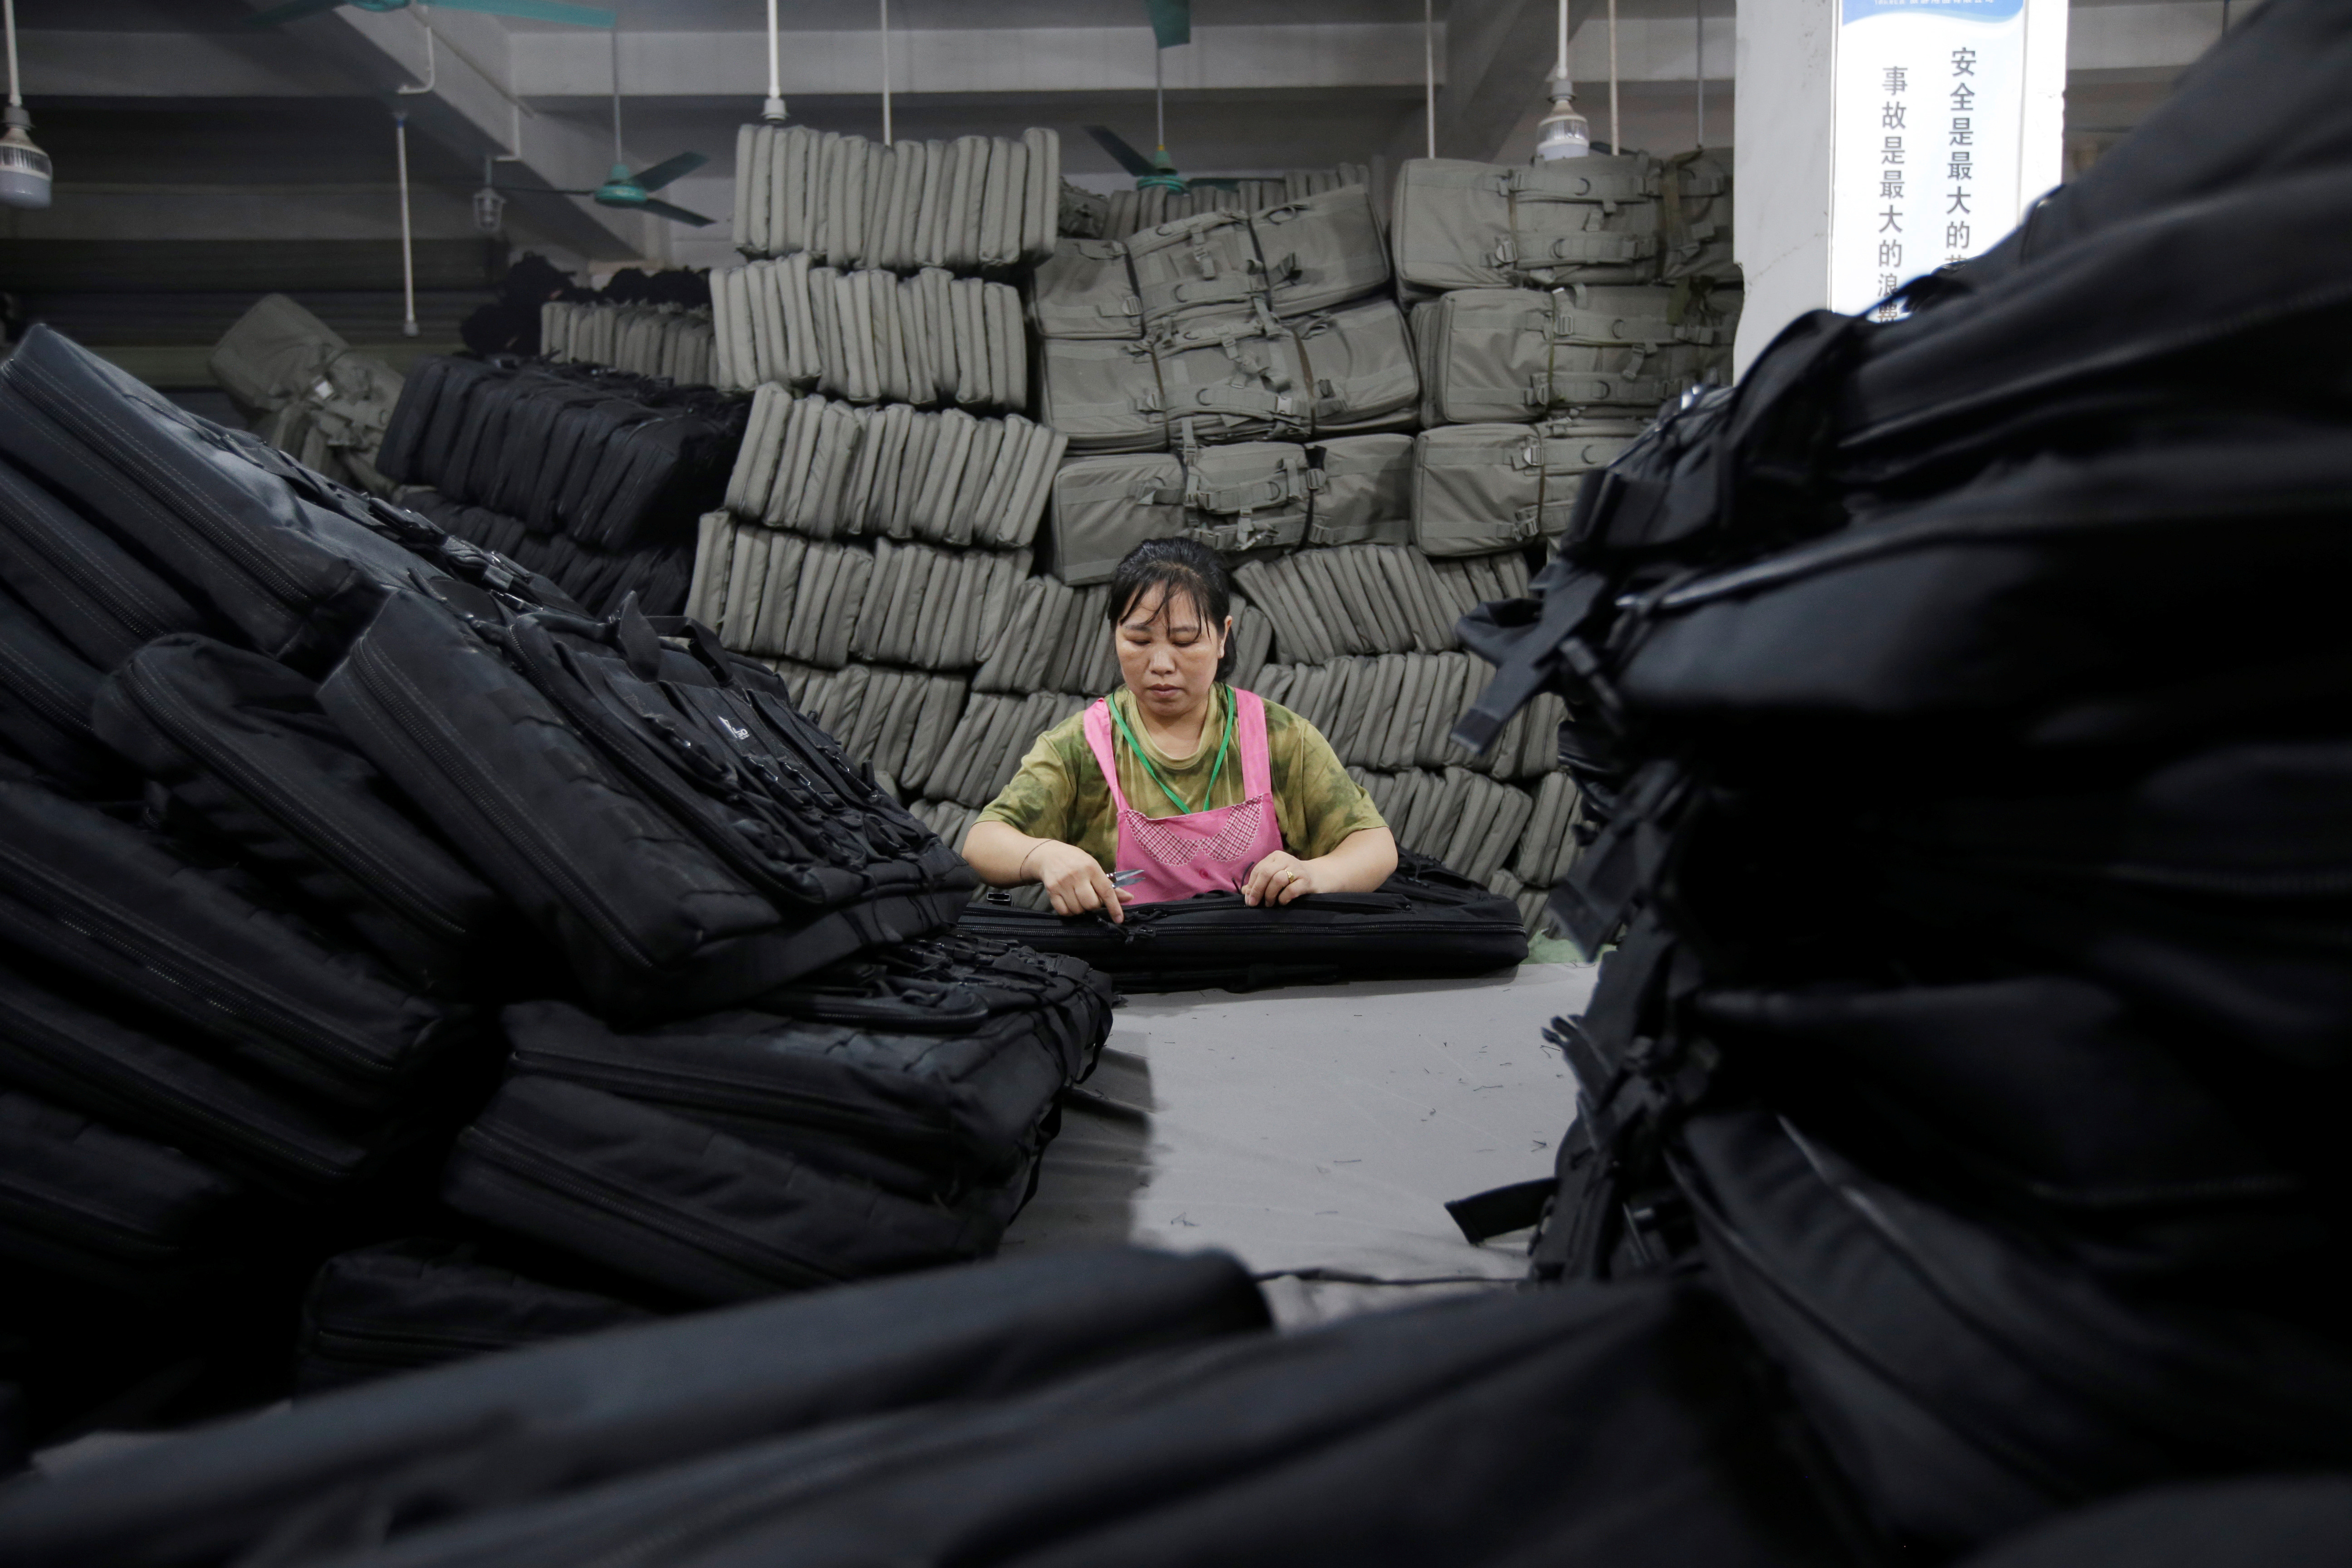 A woman works on gun cases in a factory of firearm equipment manufacturer Yakeda Tactical Gear Co, which exports most of its products to the United States, in Guangzhou, Guangdong province, China June 1, 2019. Picture taken June 1, 2019. REUTERS/Jason Lee? - RC11B43C1550